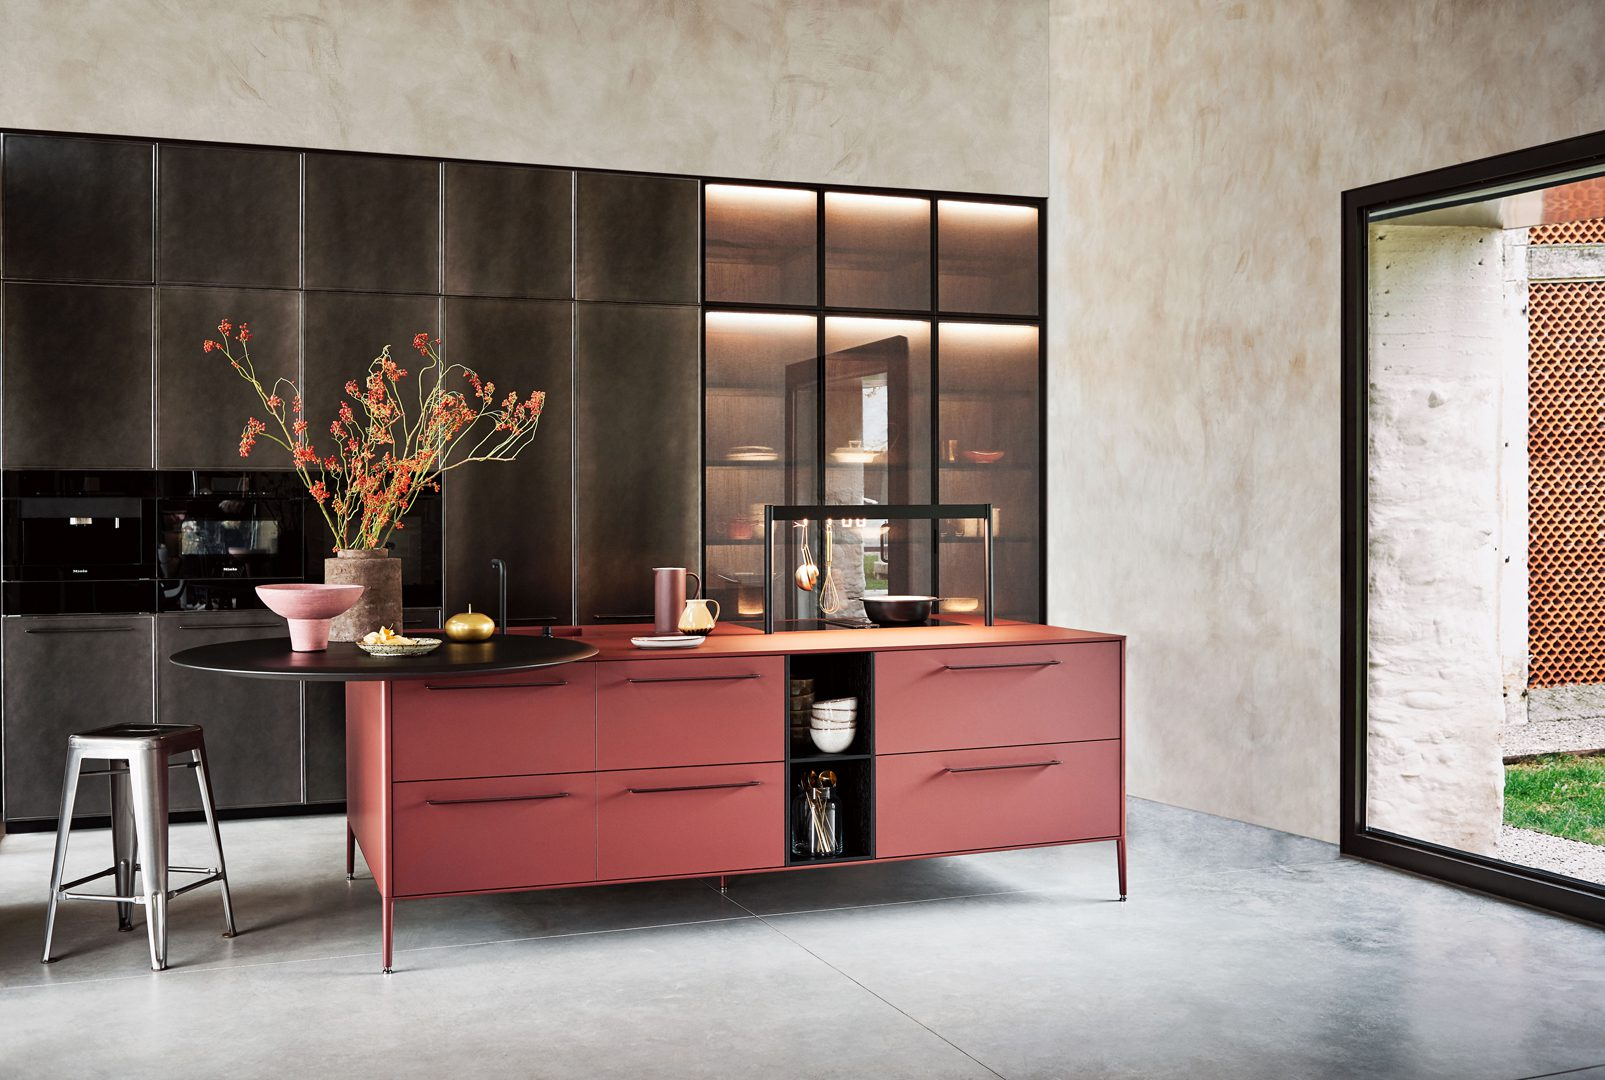 Cesar Unit Kitchen in Rosso Jaipur Fenix Laminate and Metallic Effect Lacquer